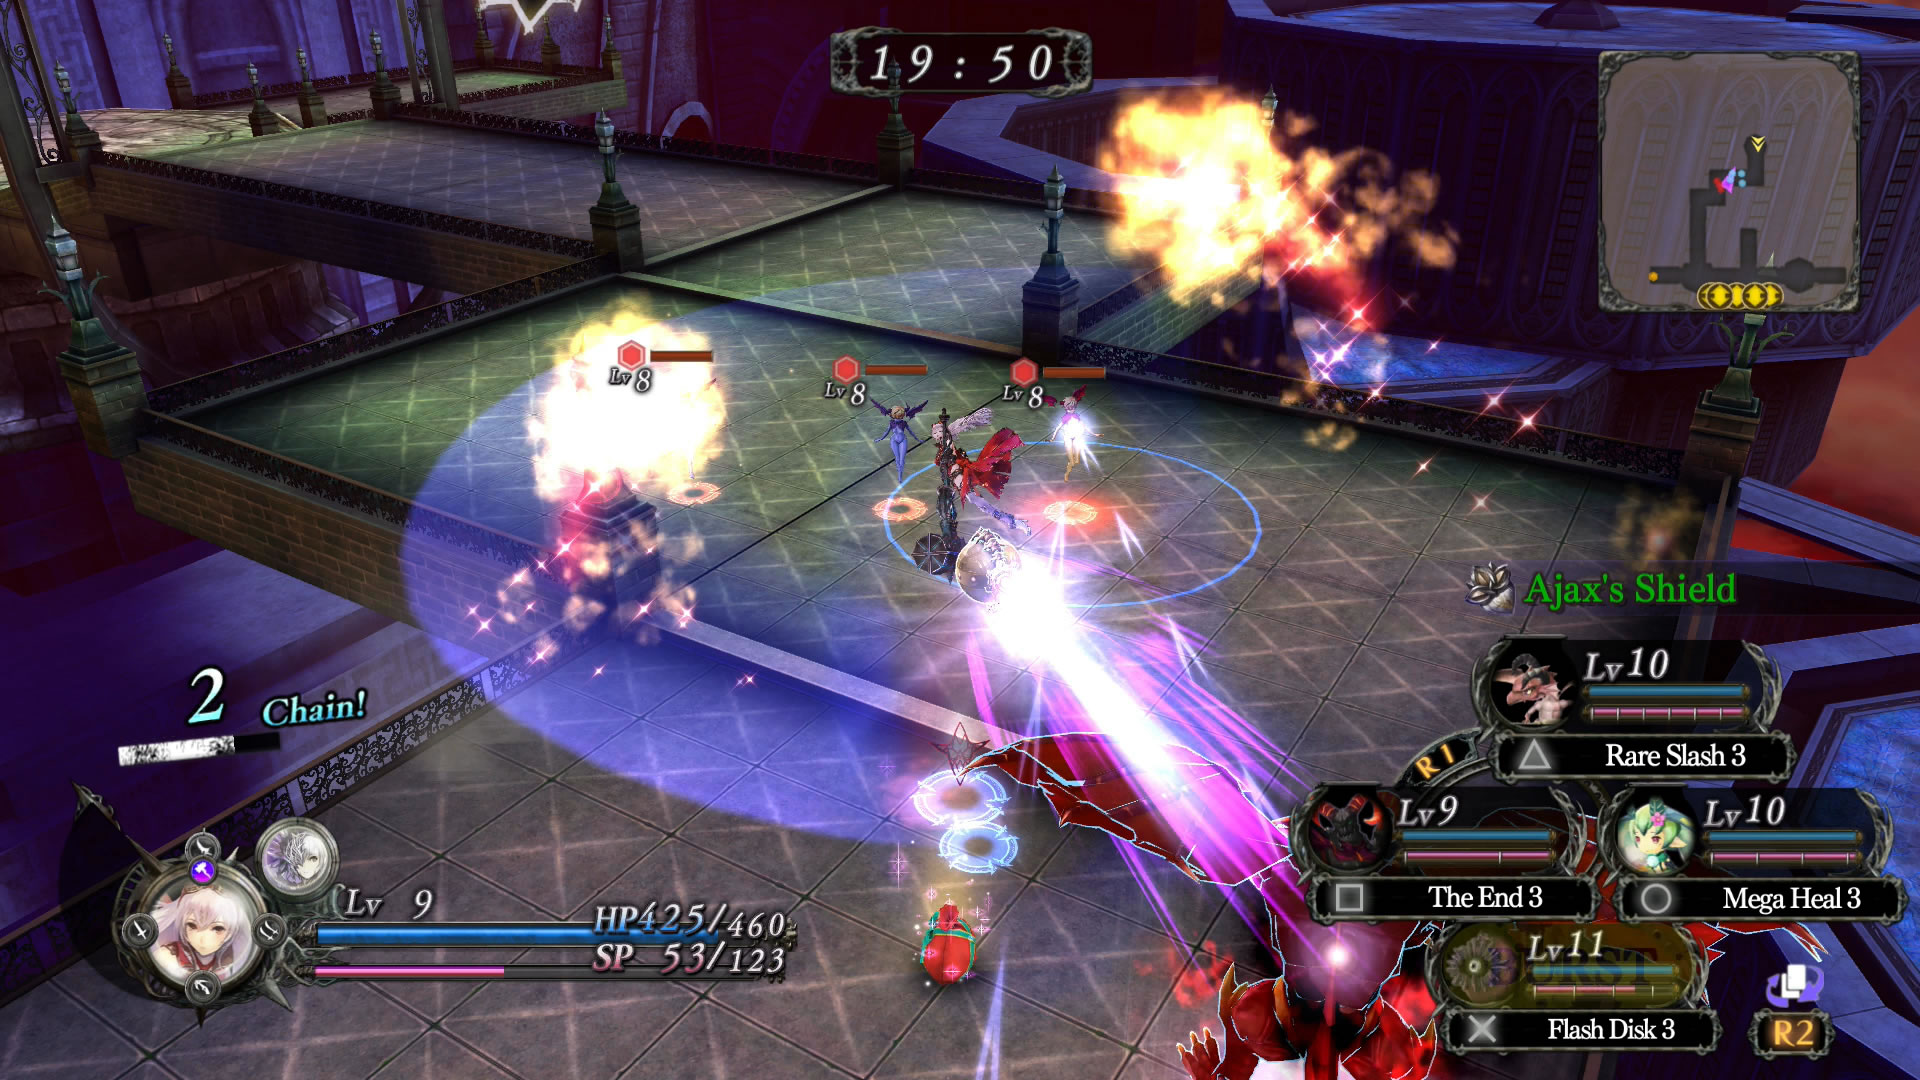 A general gameplay shot. Arnice engages in battle with fiends at her side.